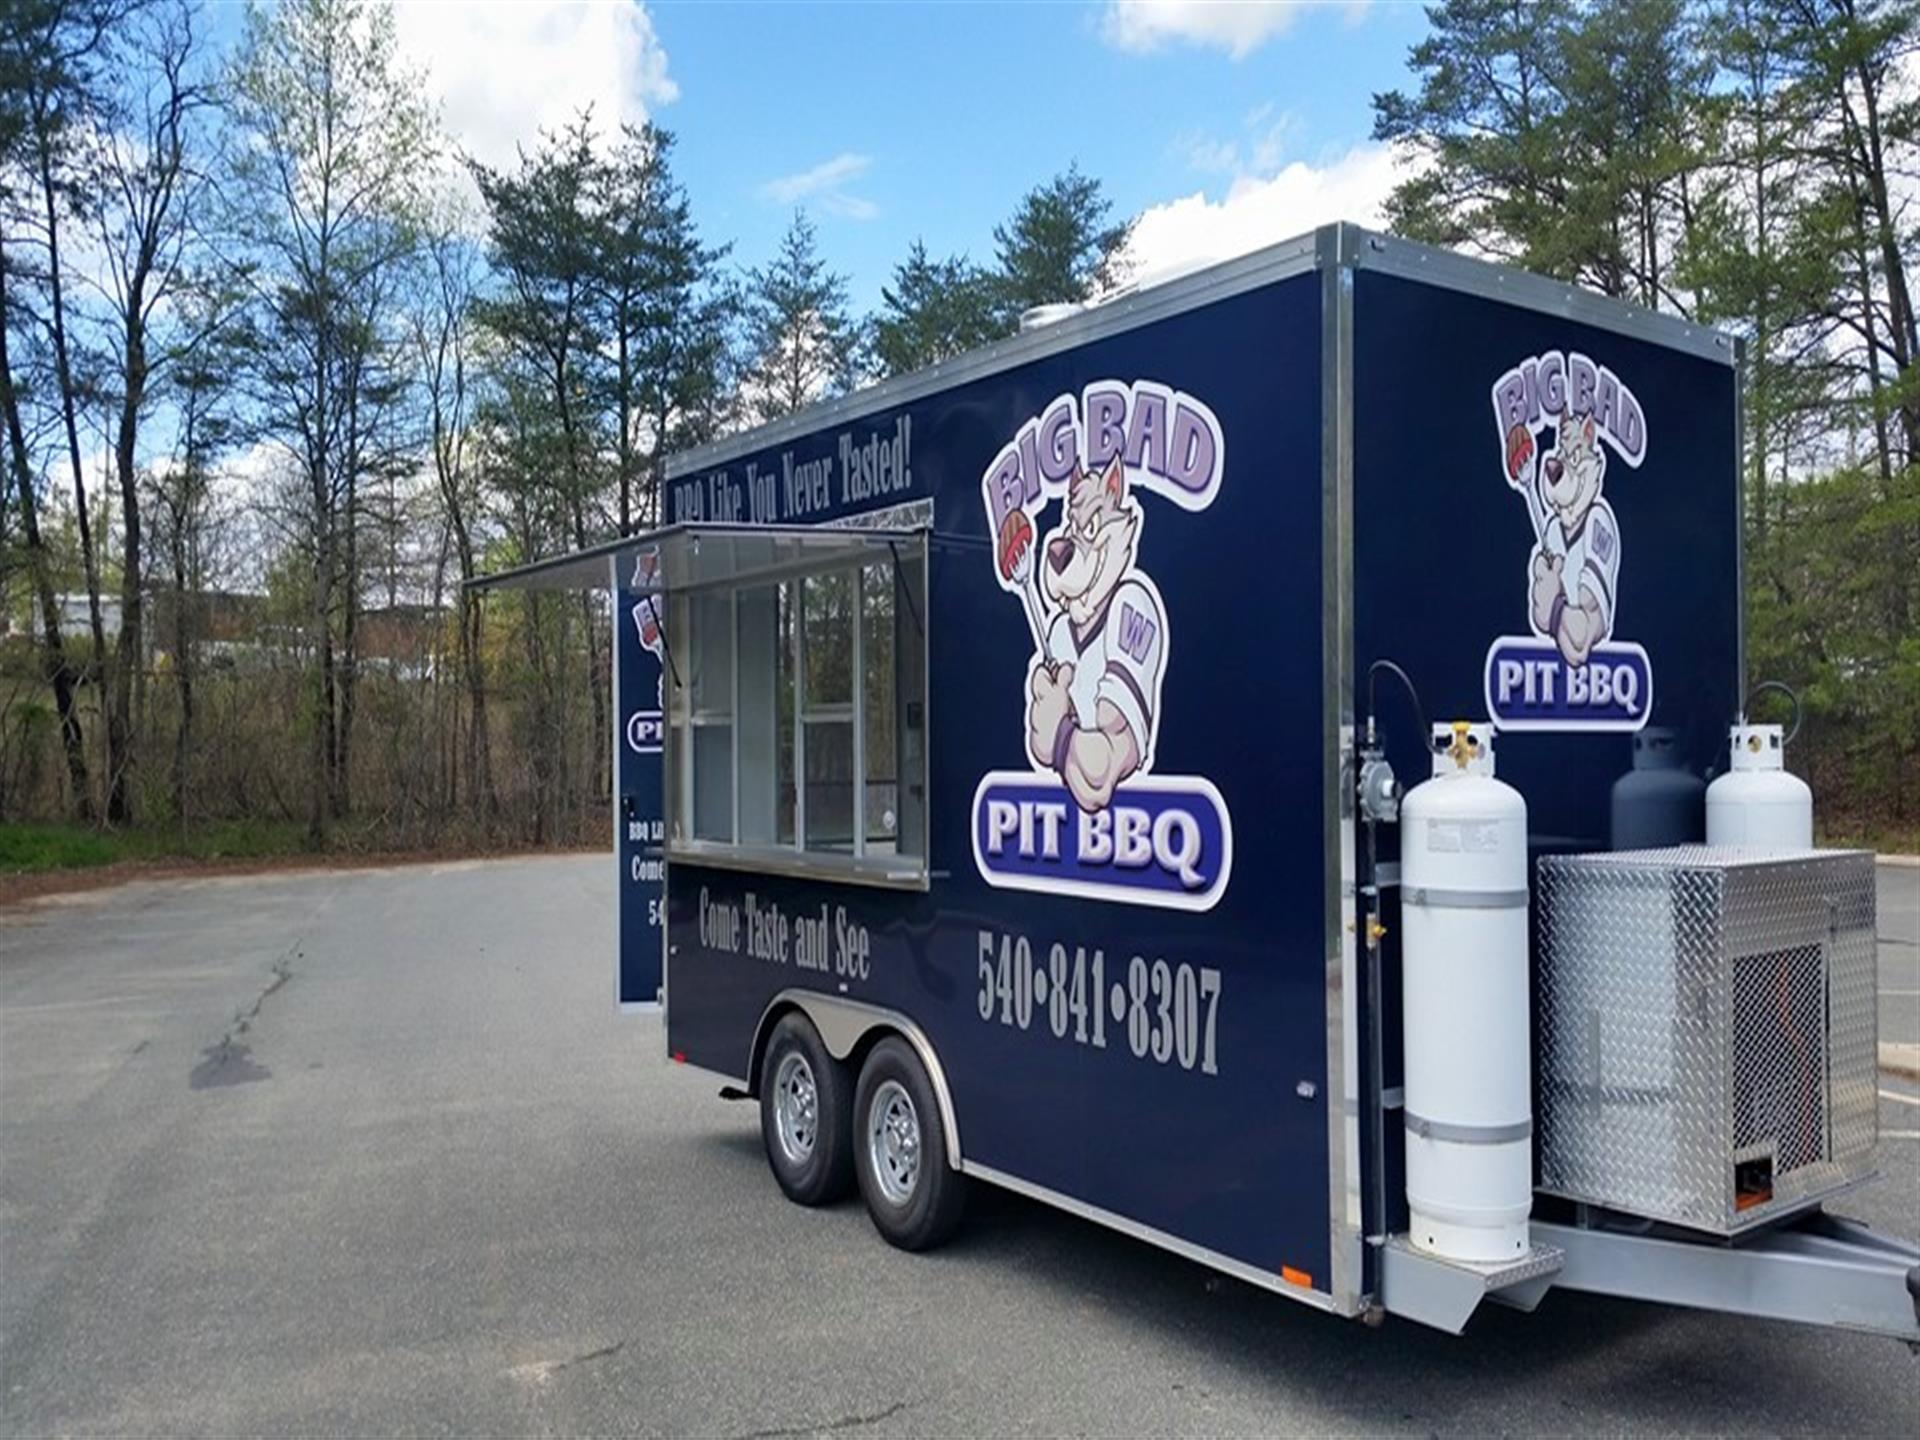 Big Bad Pit BBQ truck in parking lot. 840-841-8307